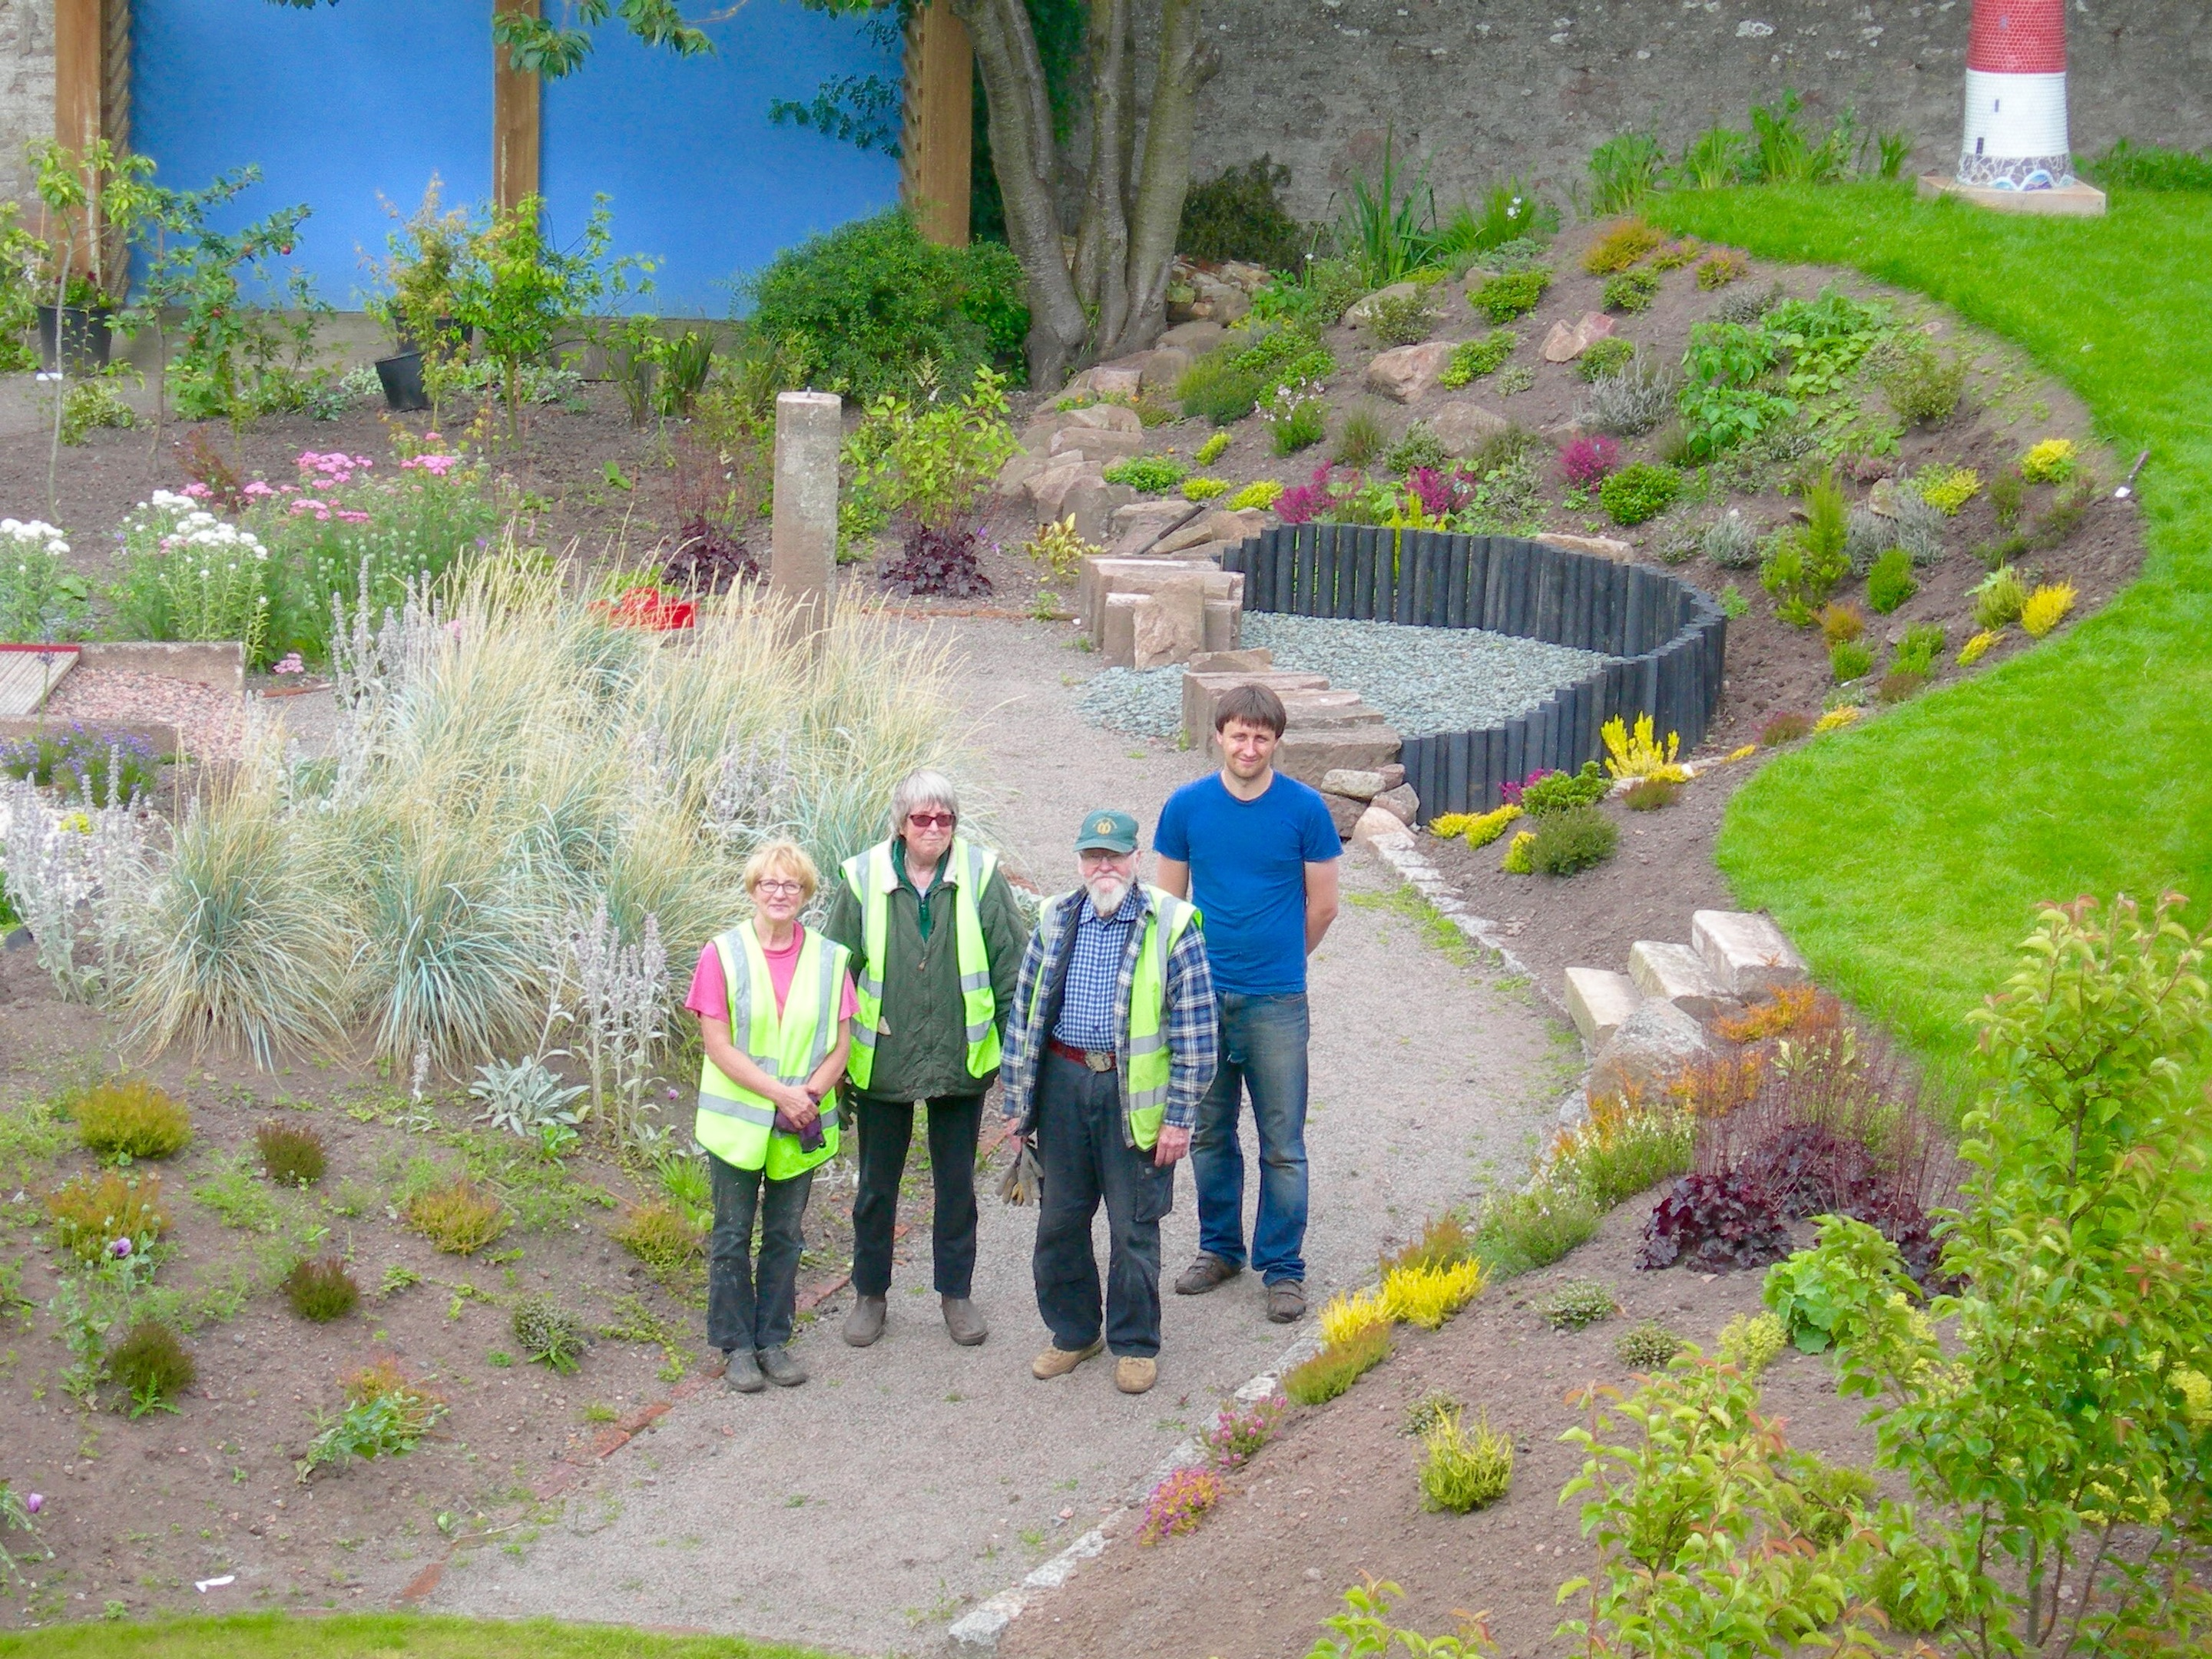 The Voyage of Life garden in Inverbervie has been hailed a huge success